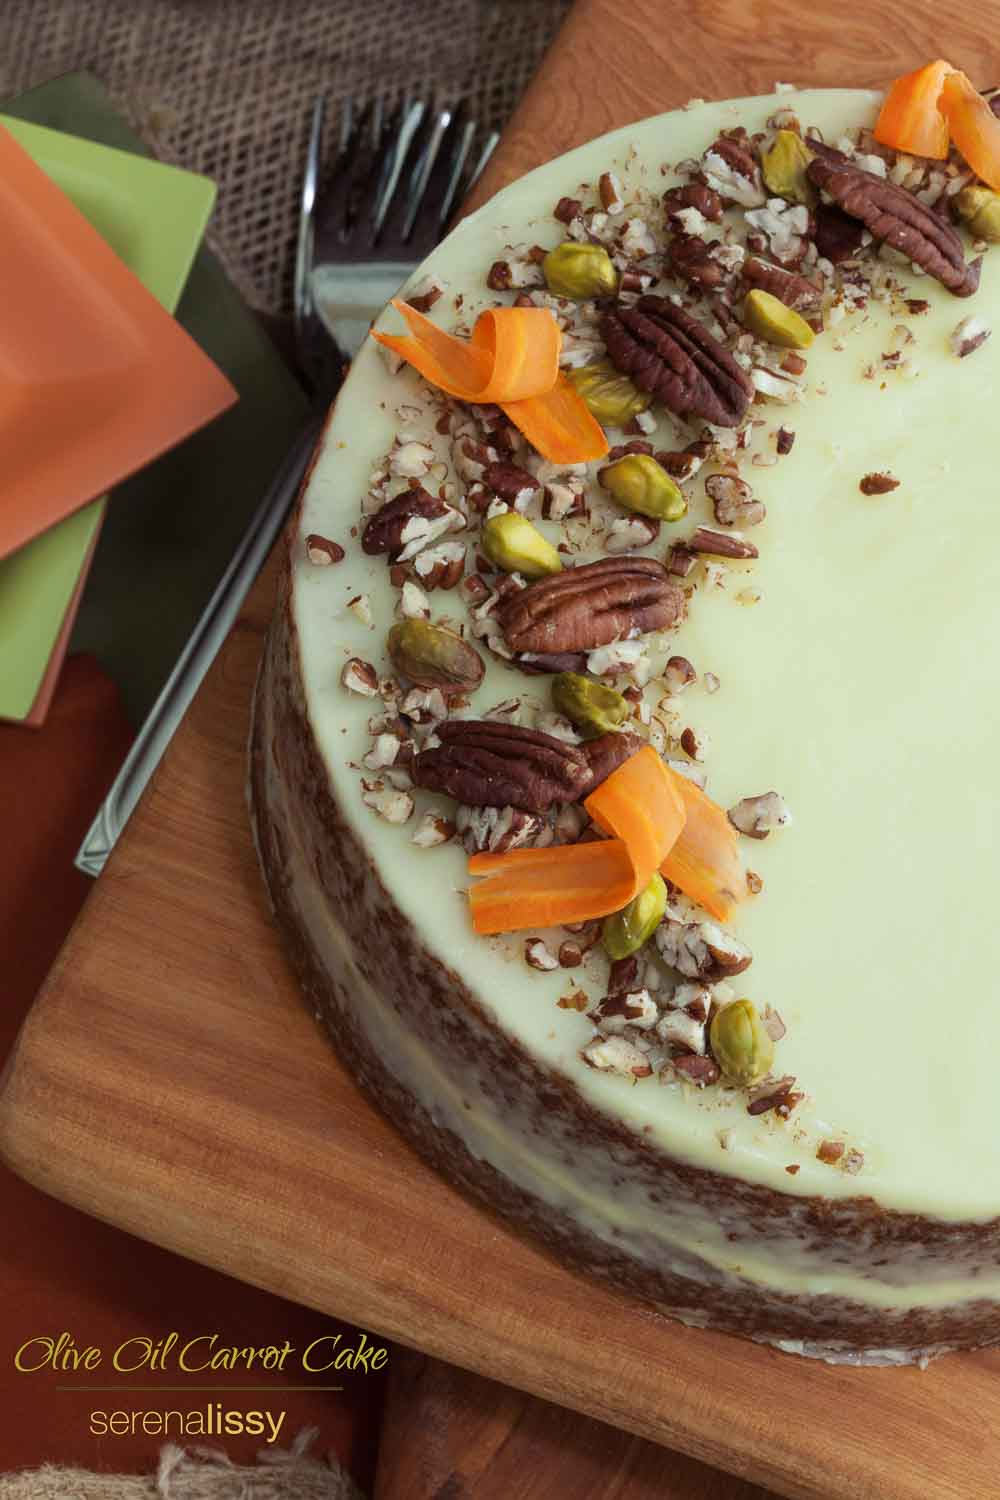 Carrot Cake With Extra Virgin Olive Oil